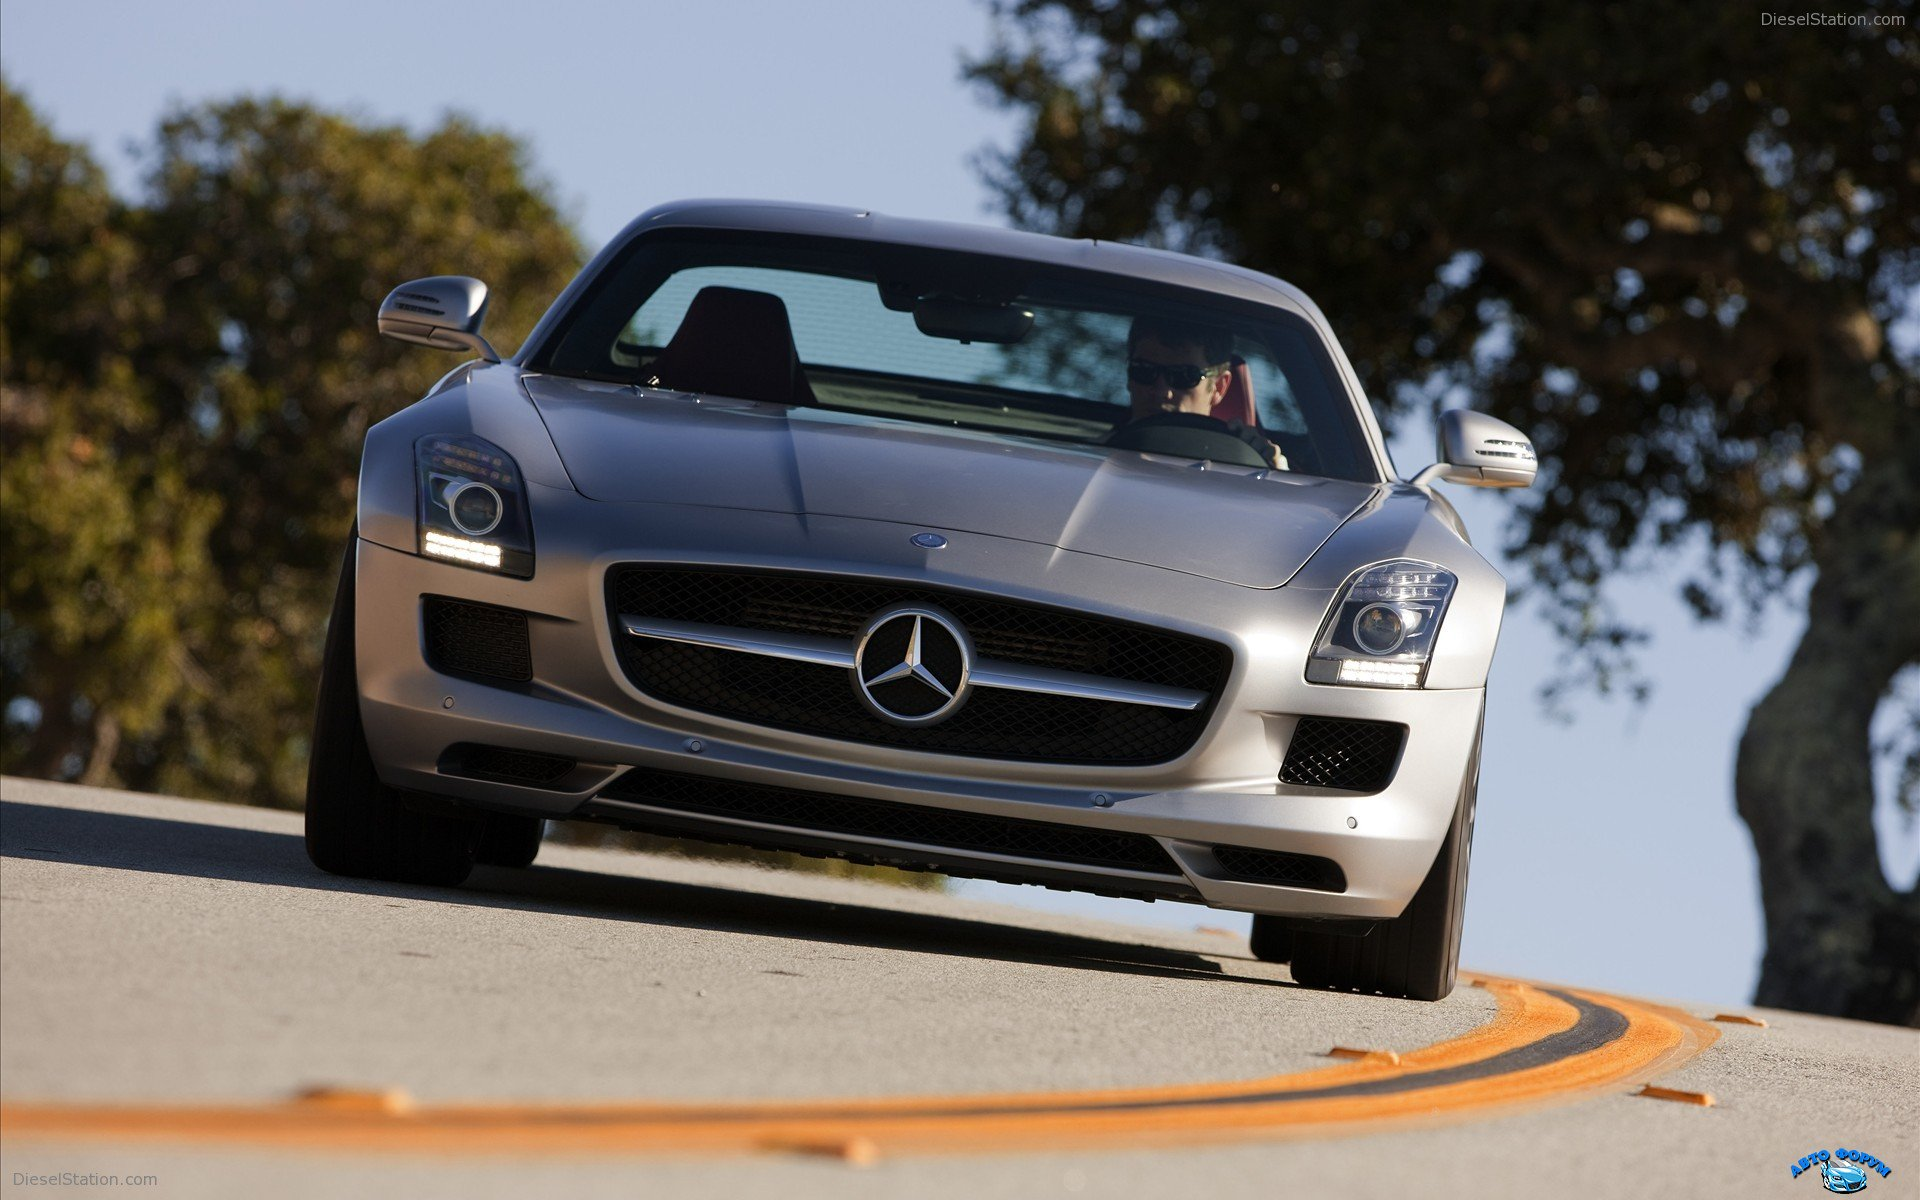 Mercedes-Benz-SLS-AMG-2011-widescreen-10.jpg